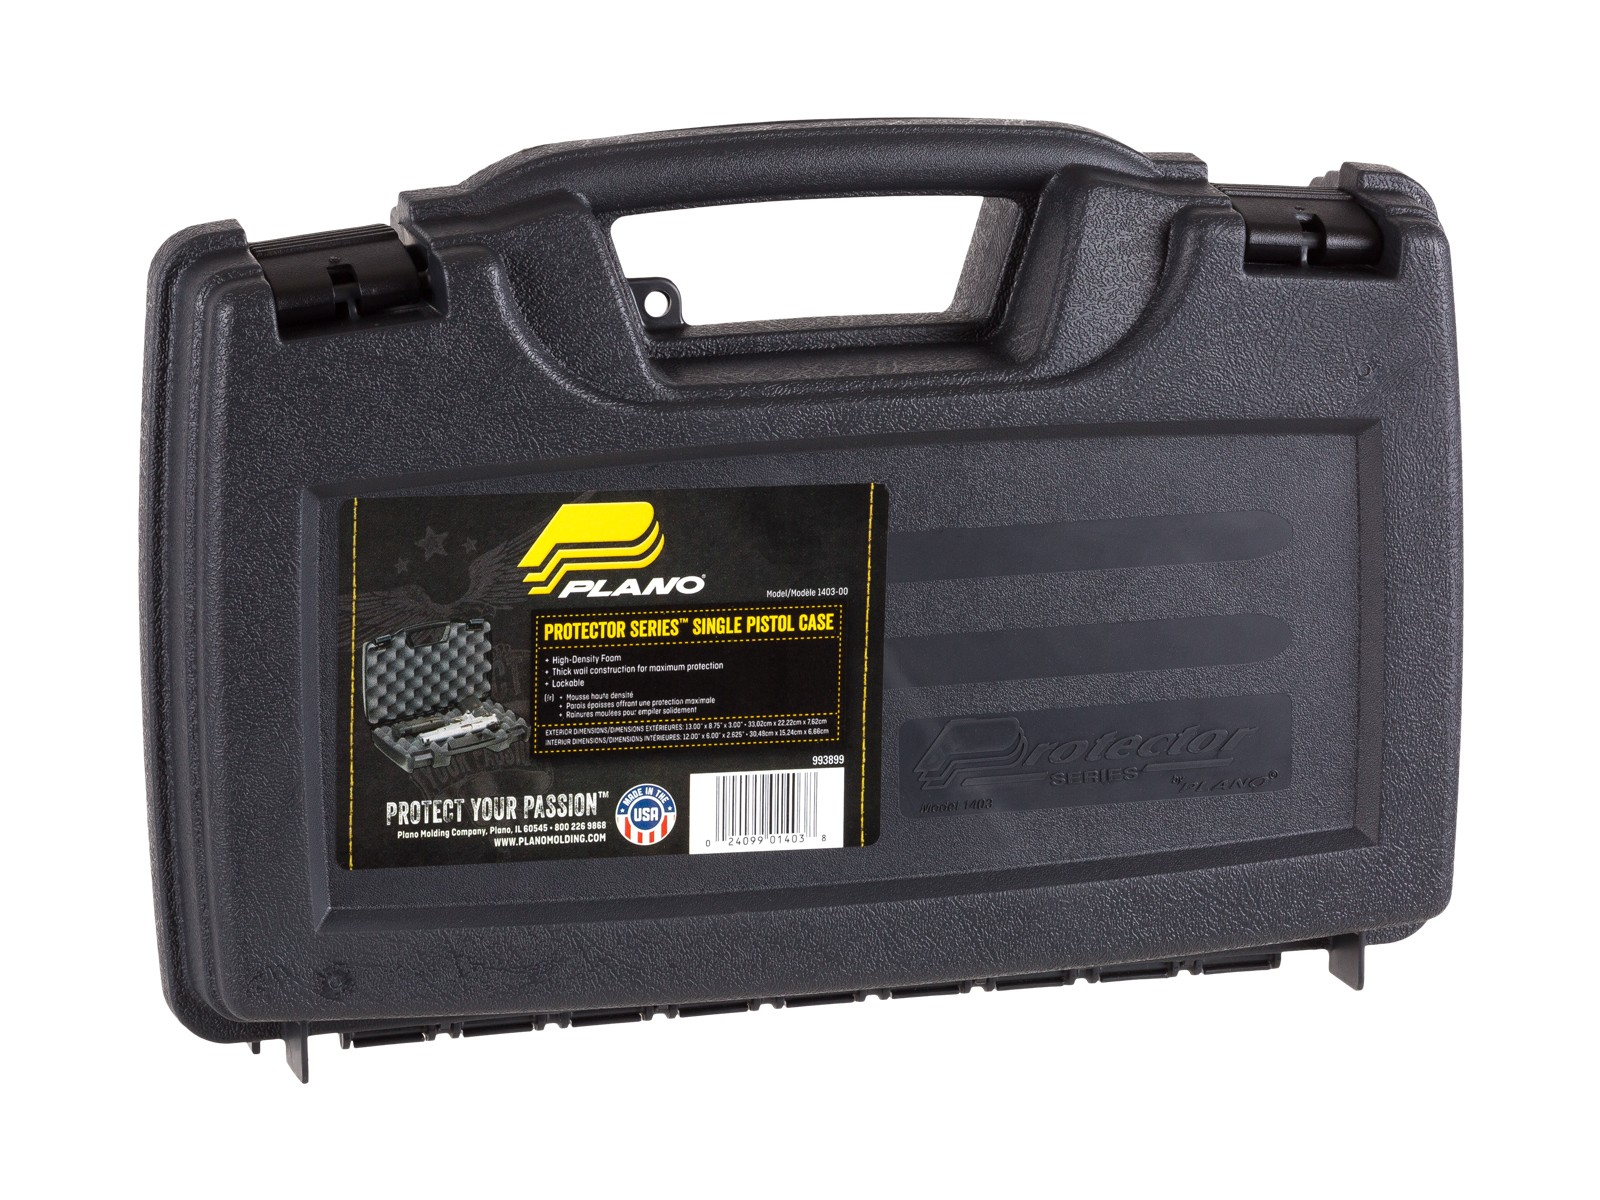 Plano Protector Pistol Case – Single